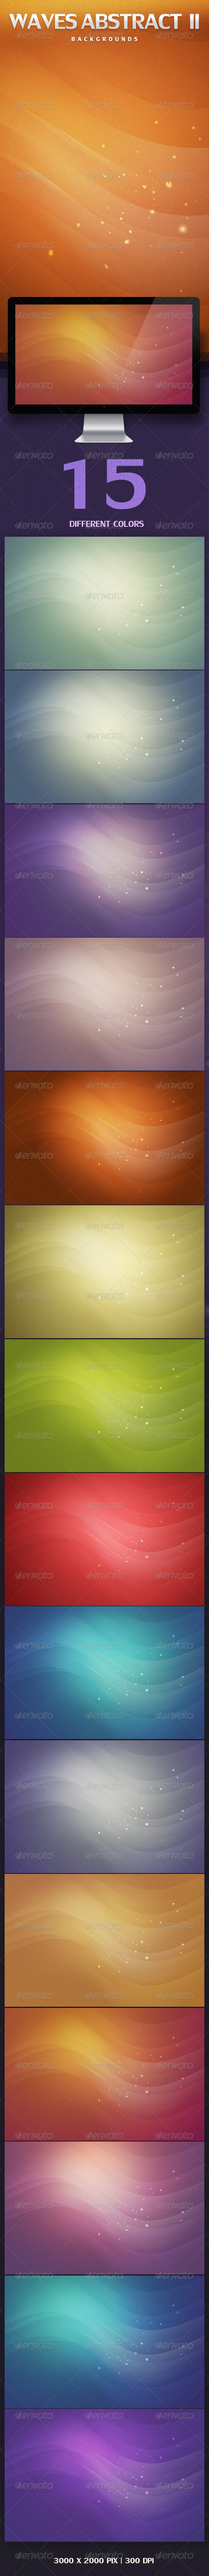 GraphicRiver Waves Abstract Backgrounds V2 3522988